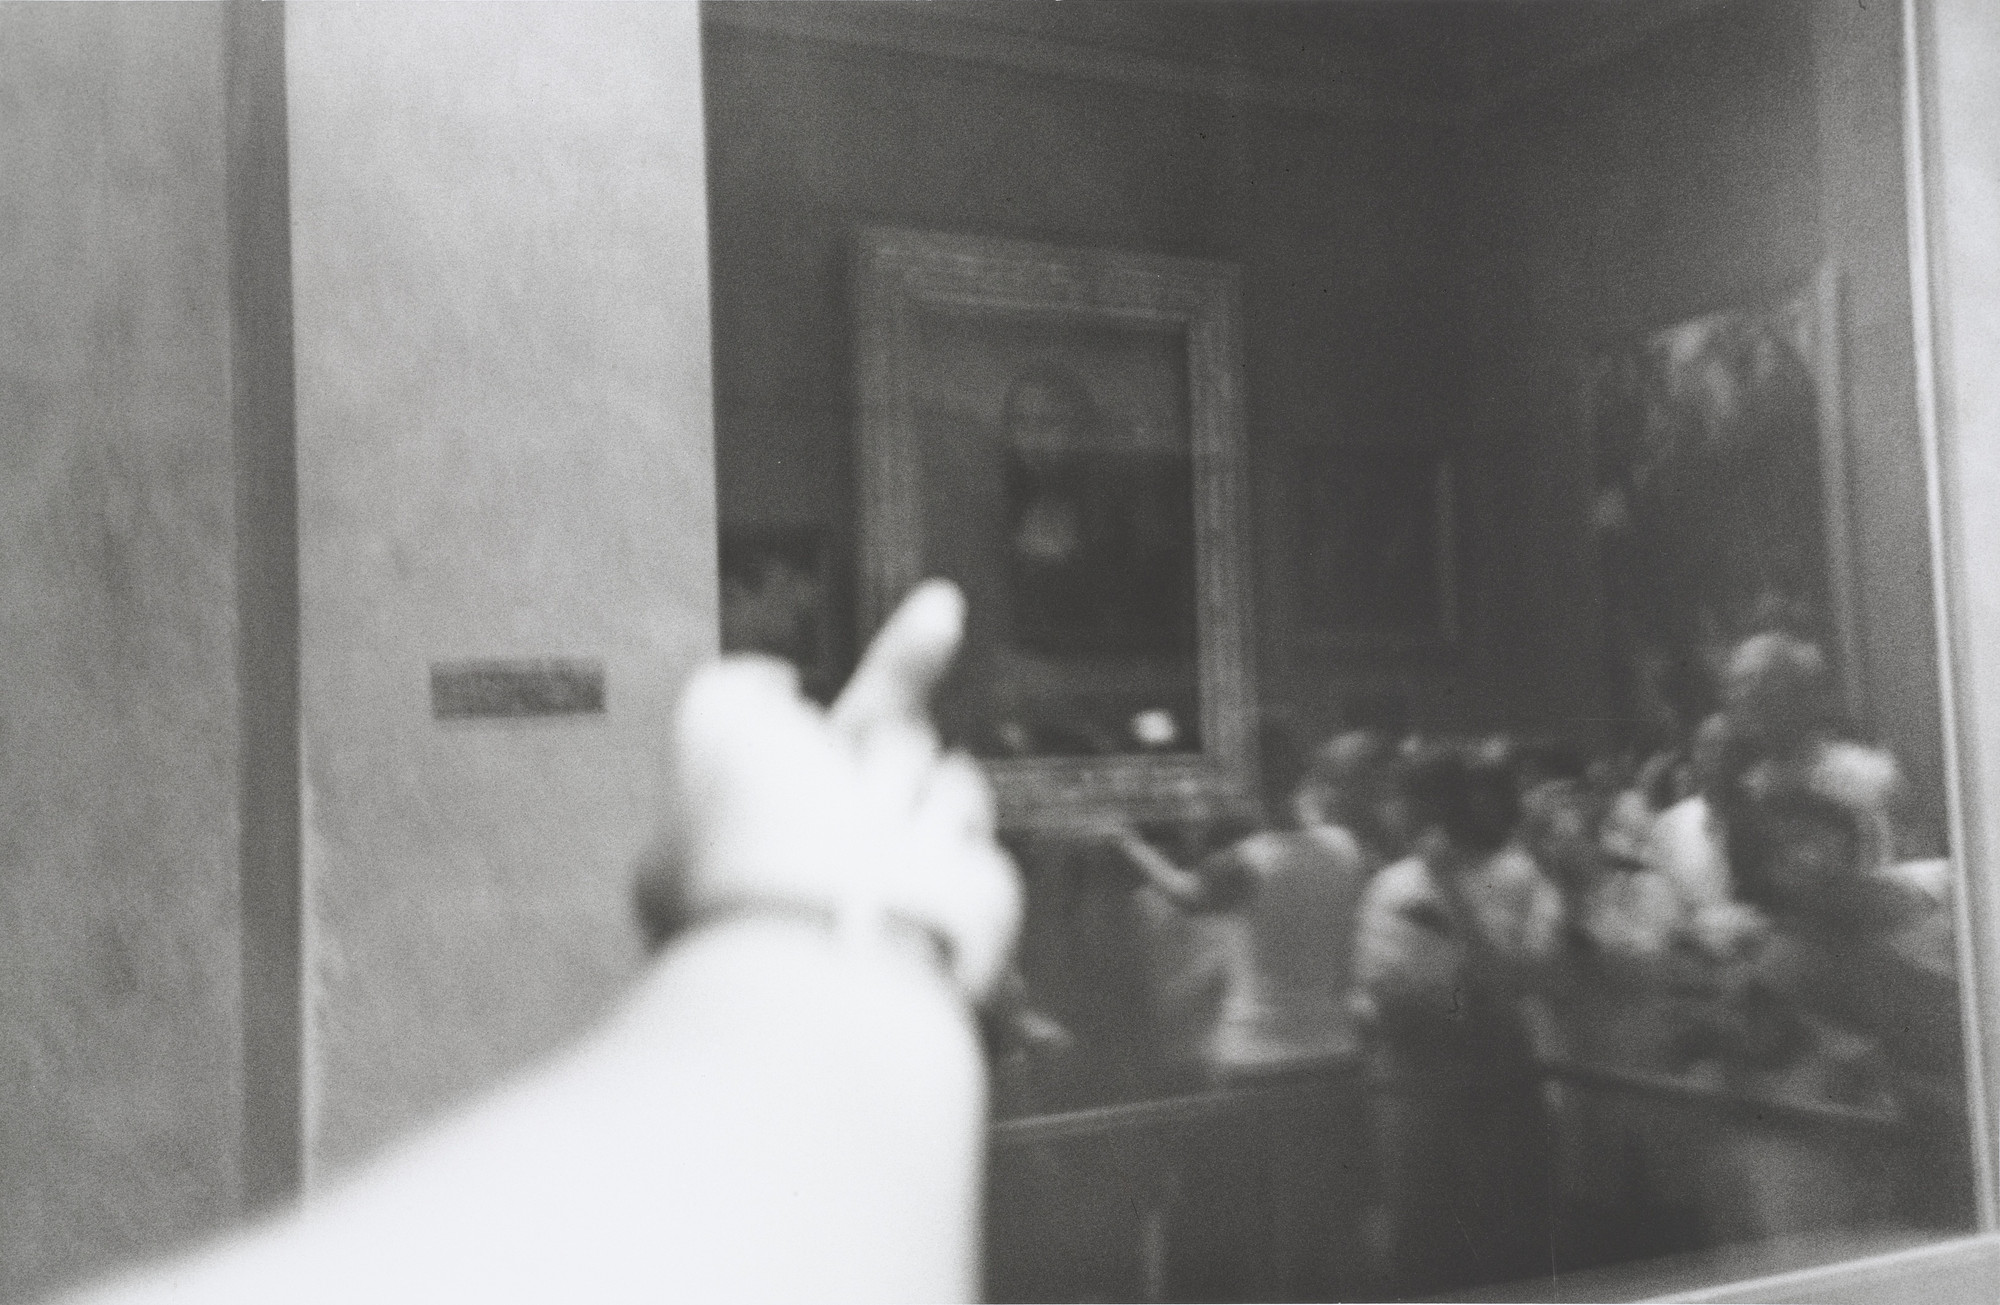 Ai Weiwei. Study of Perspective - Mona Lisa. 1995-2003